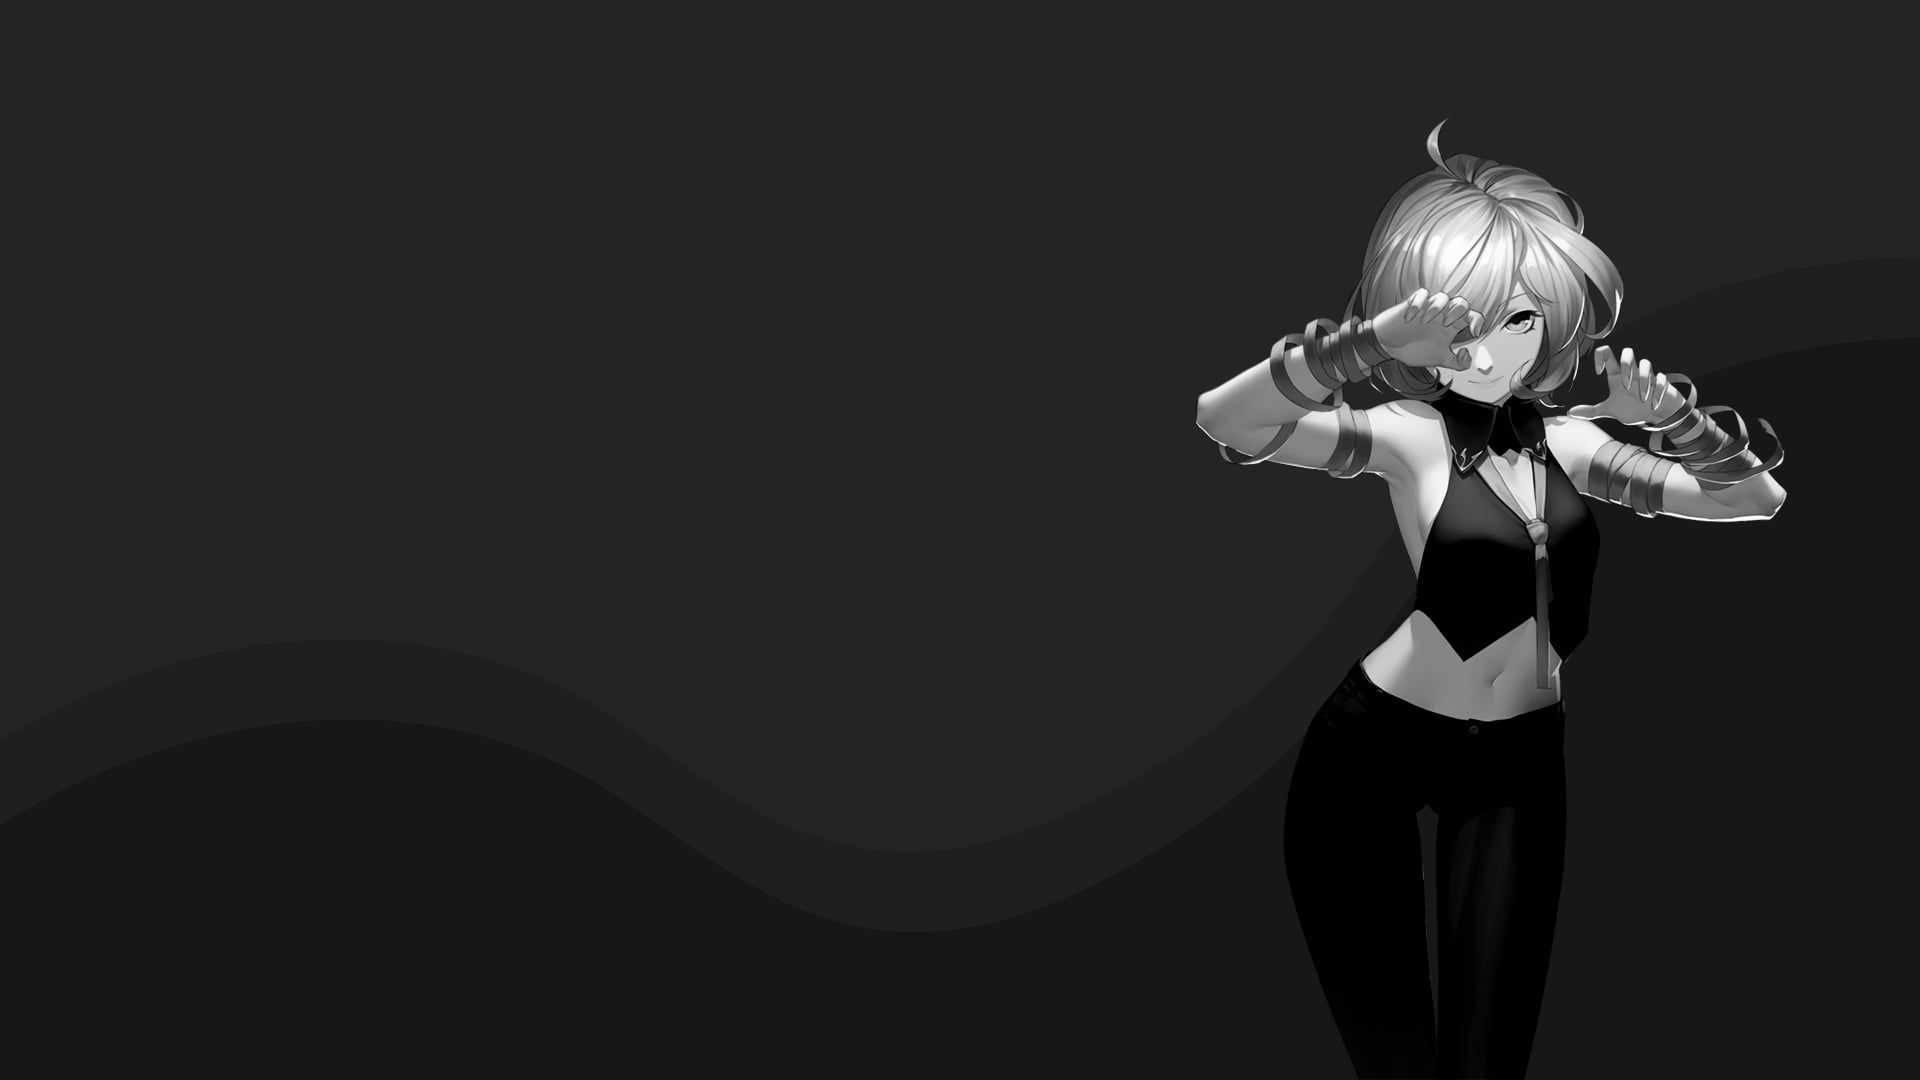 Girl Black And White Anime Wallpapers Wallpaper Cave